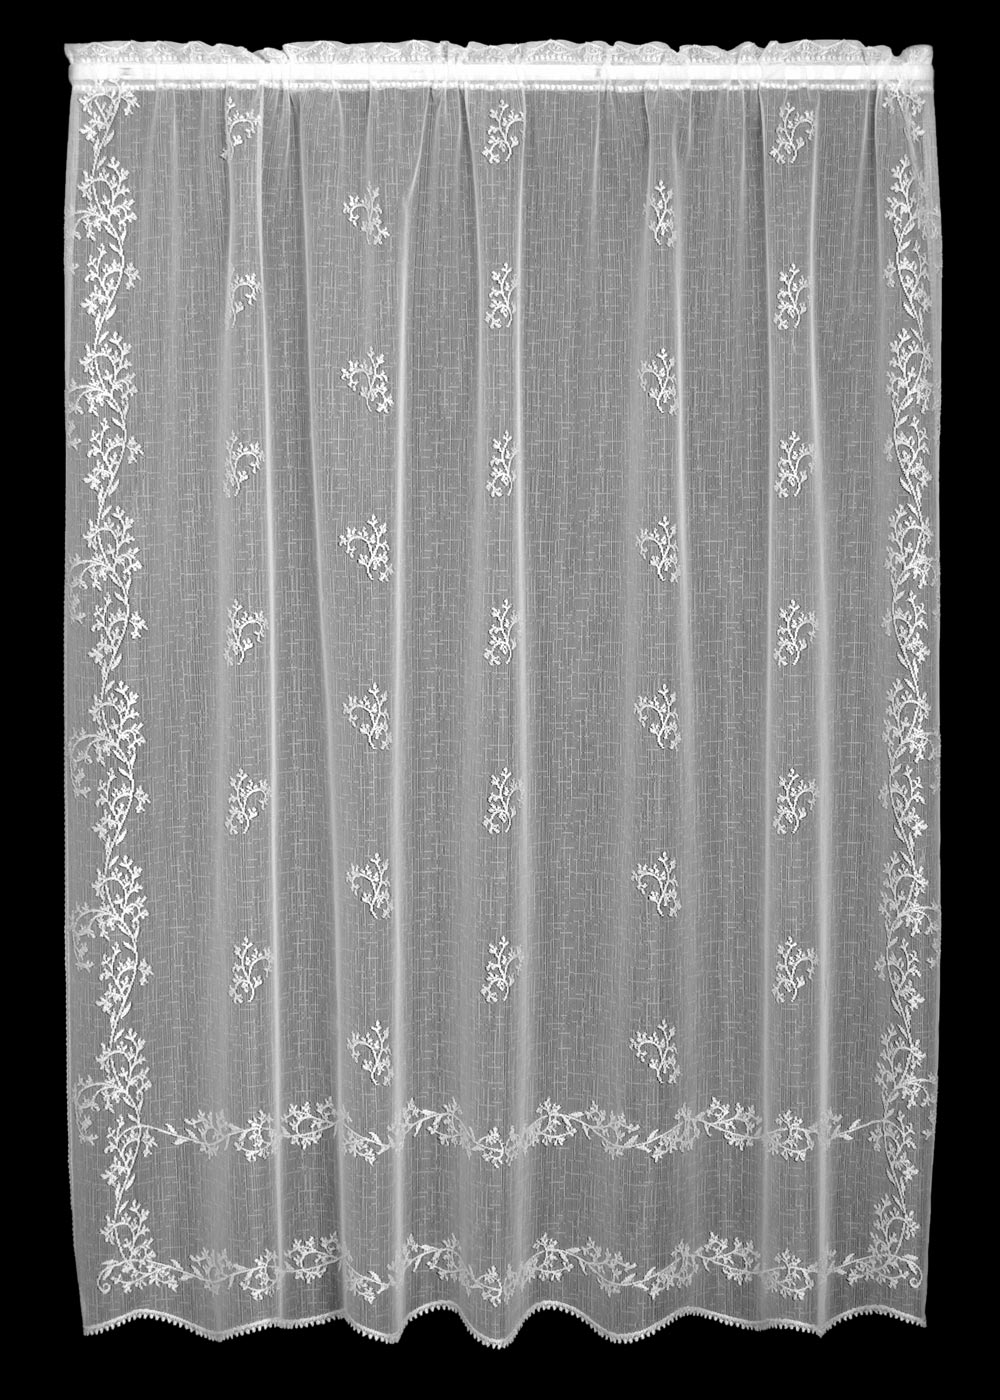 Heritage Lace Sheer Divine Panel 2 Sizes And 3 Colors